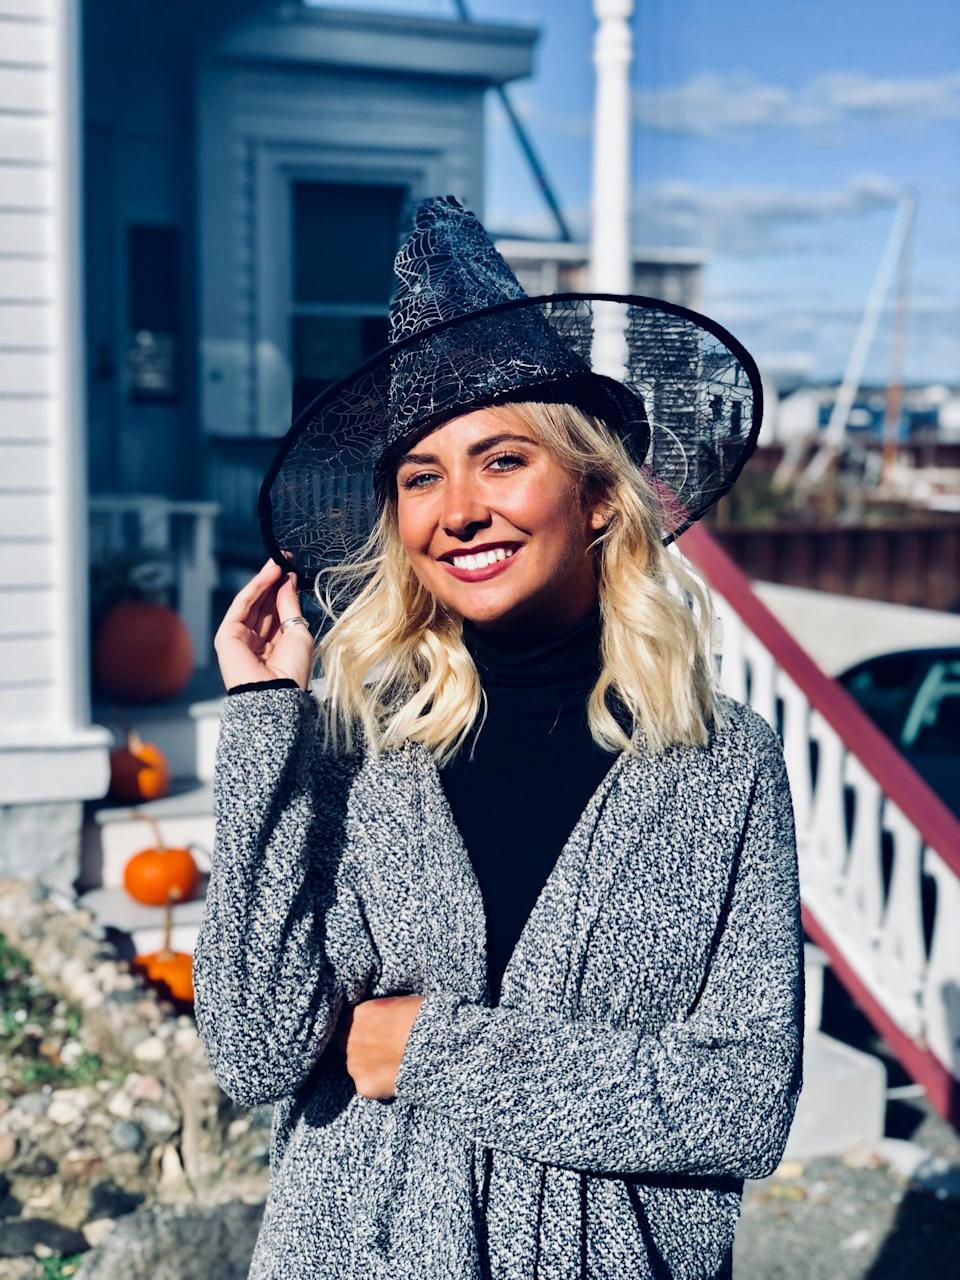 """<p>Don't pass up on the photo op! You will usually have to wait in line due to a crowd of people, and depending on how close you go to <a class=""""link rapid-noclick-resp"""" href=""""https://www.popsugar.co.uk/Halloween"""" rel=""""nofollow noopener"""" target=""""_blank"""" data-ylk=""""slk:Halloween"""">Halloween</a>, the busier it will be - but the picture is worth it. For me, I went at the beginning of the season, because I lived there and knew it wouldn't be too crowded. But even this year I still plan to go! </p>"""